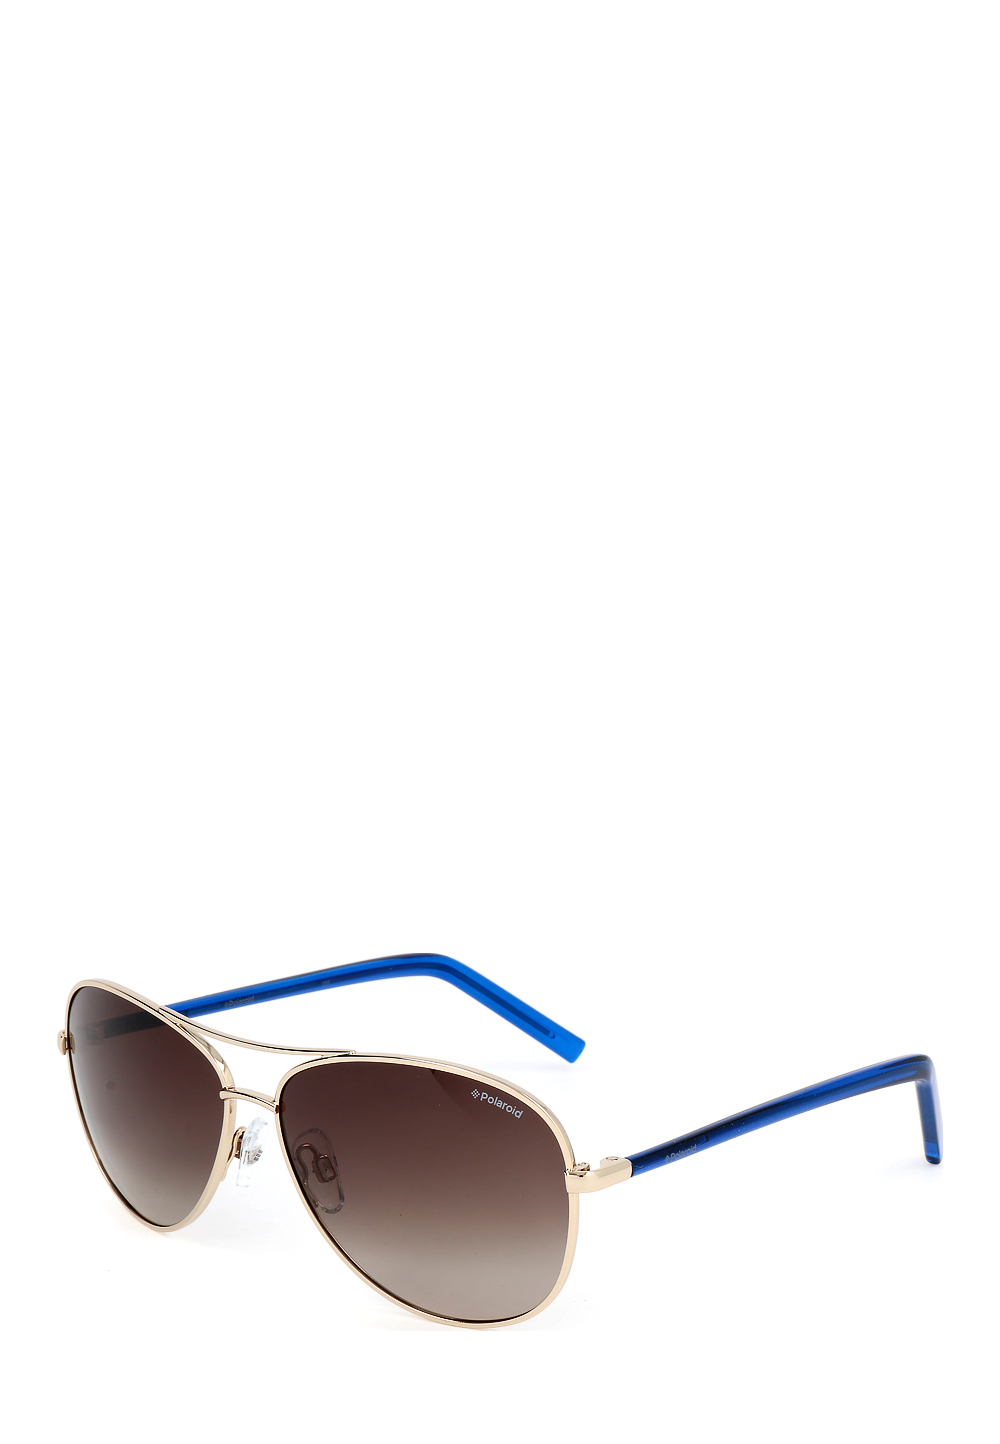 Sonnenbrille Pld4027/S, polarized, Uv400, golden bunt